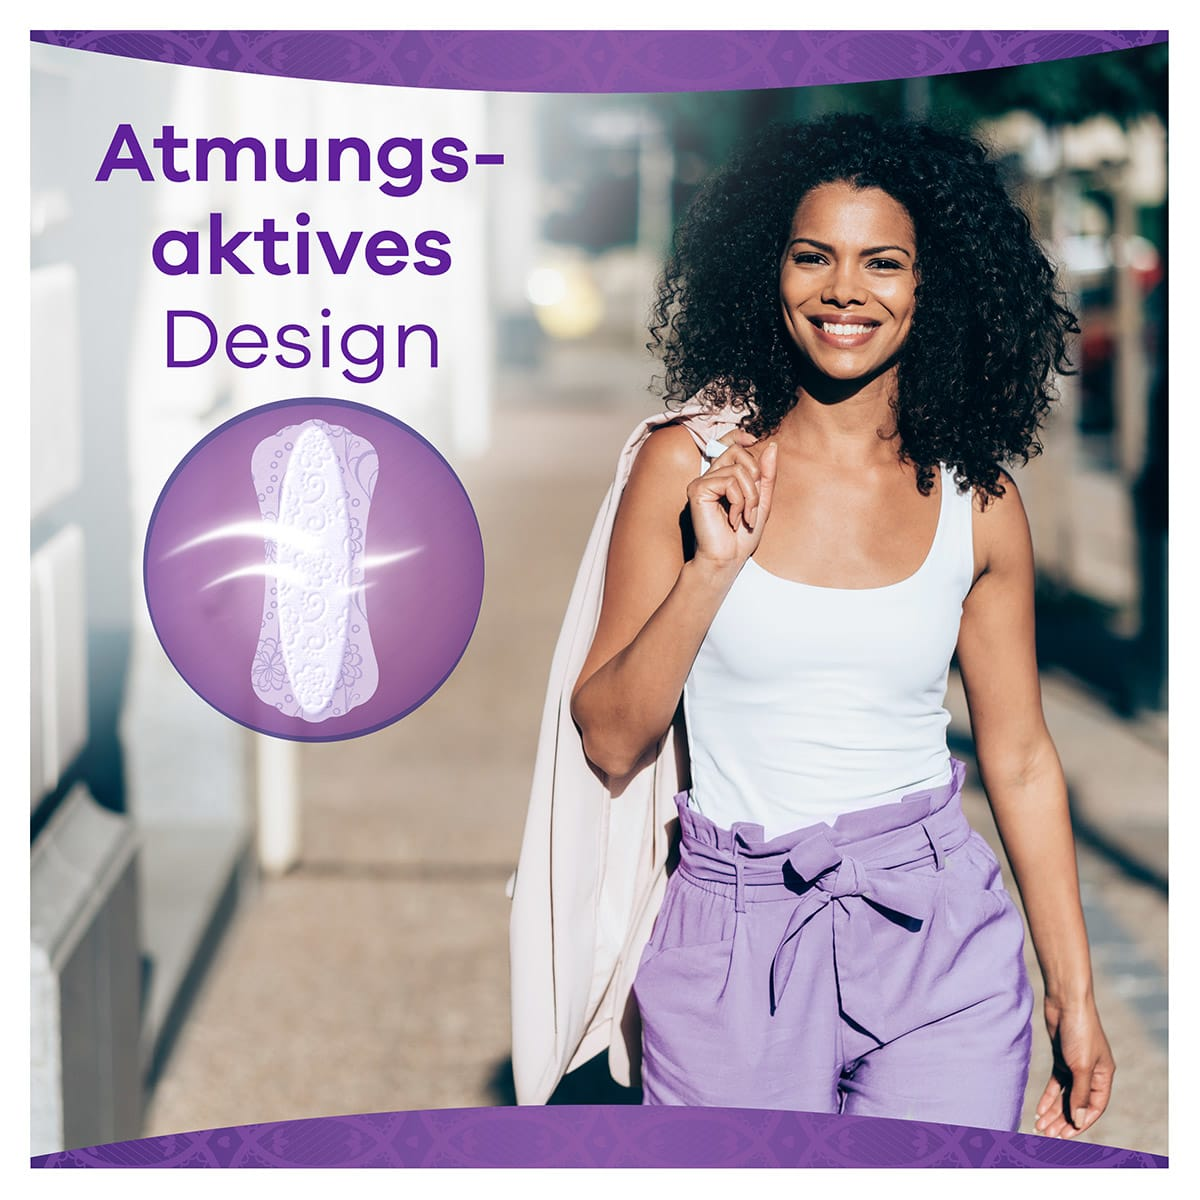 Atmungs-aktives Design